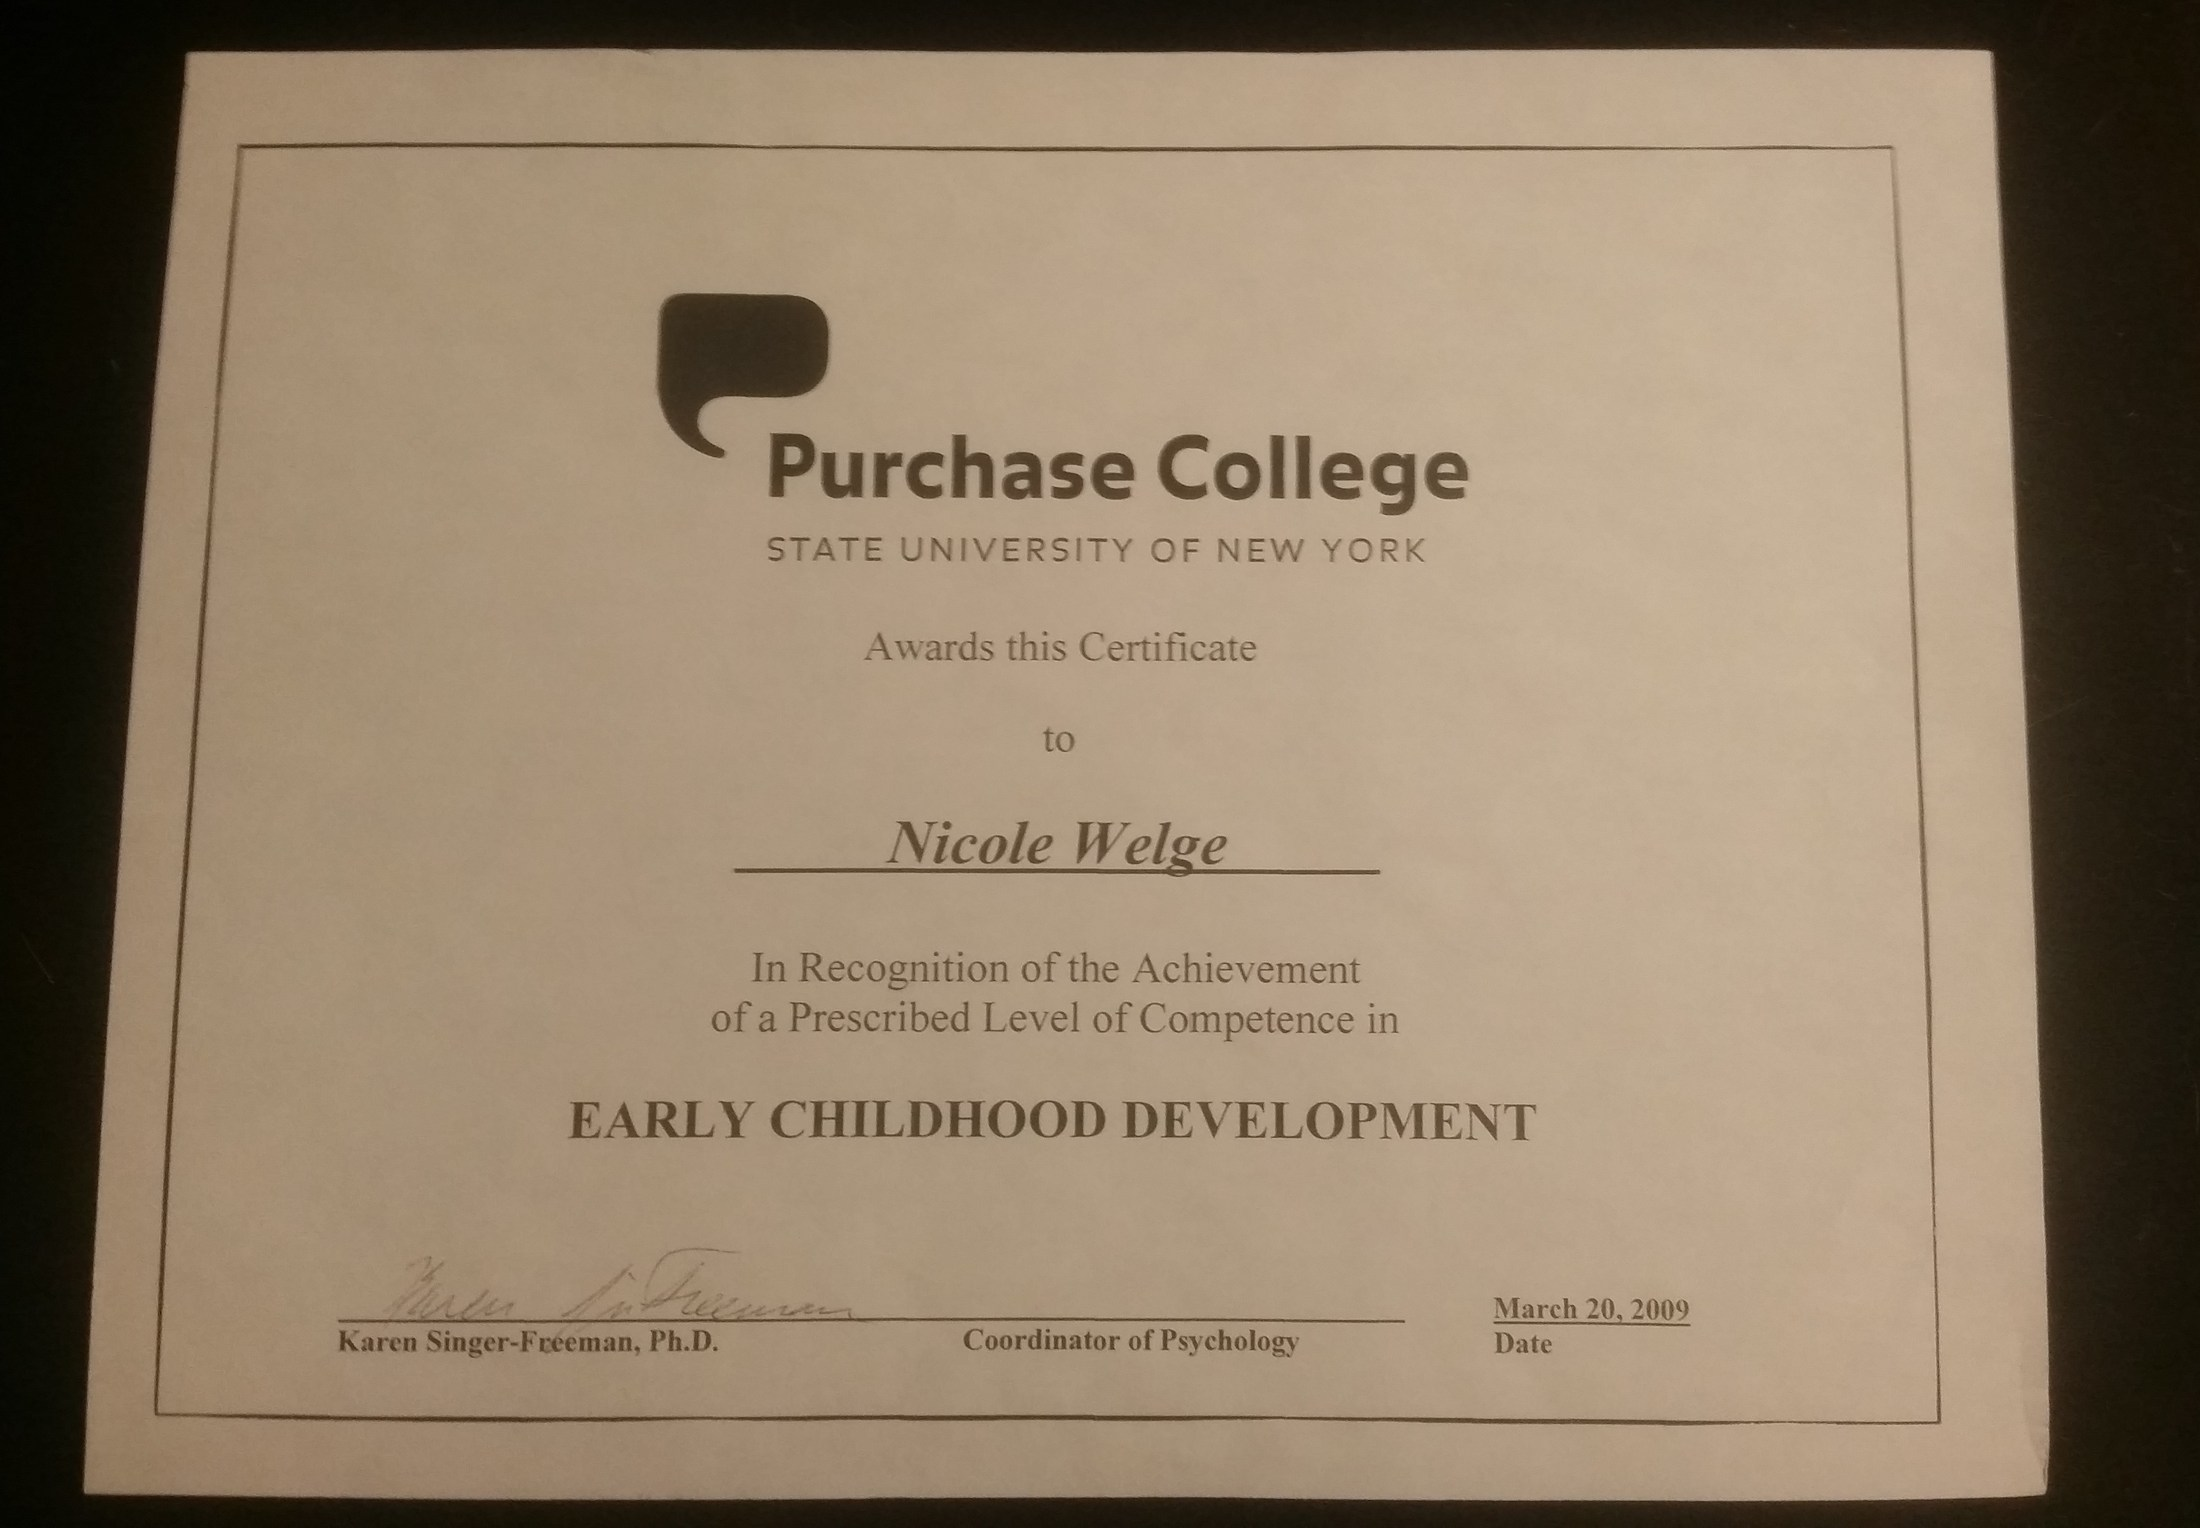 About me miss nicole welge greenwich catholic school my early childhood development certificate from purchase college suny xflitez Gallery